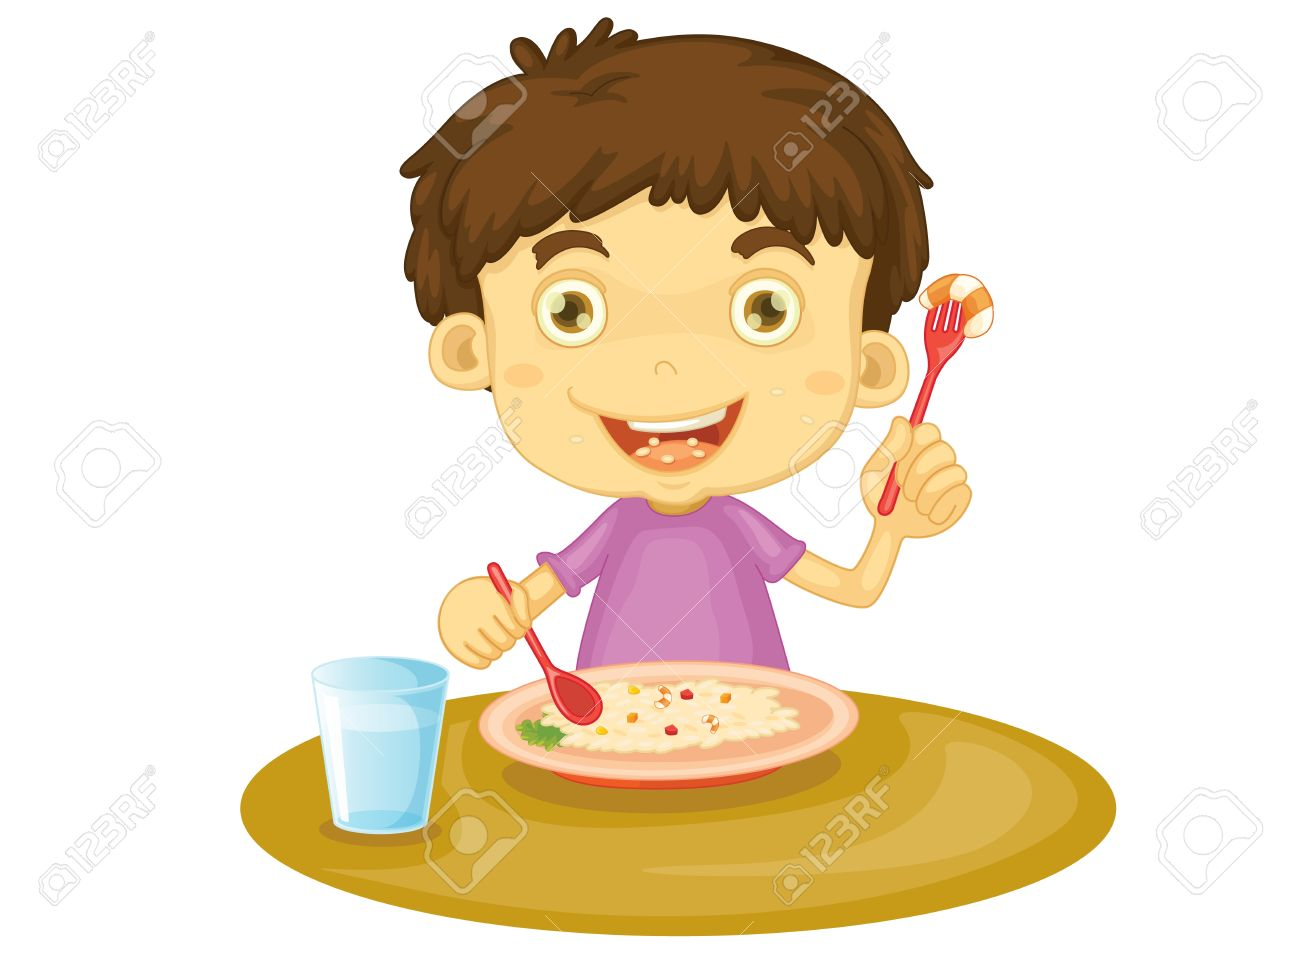 Kids Eating At Table Clipart